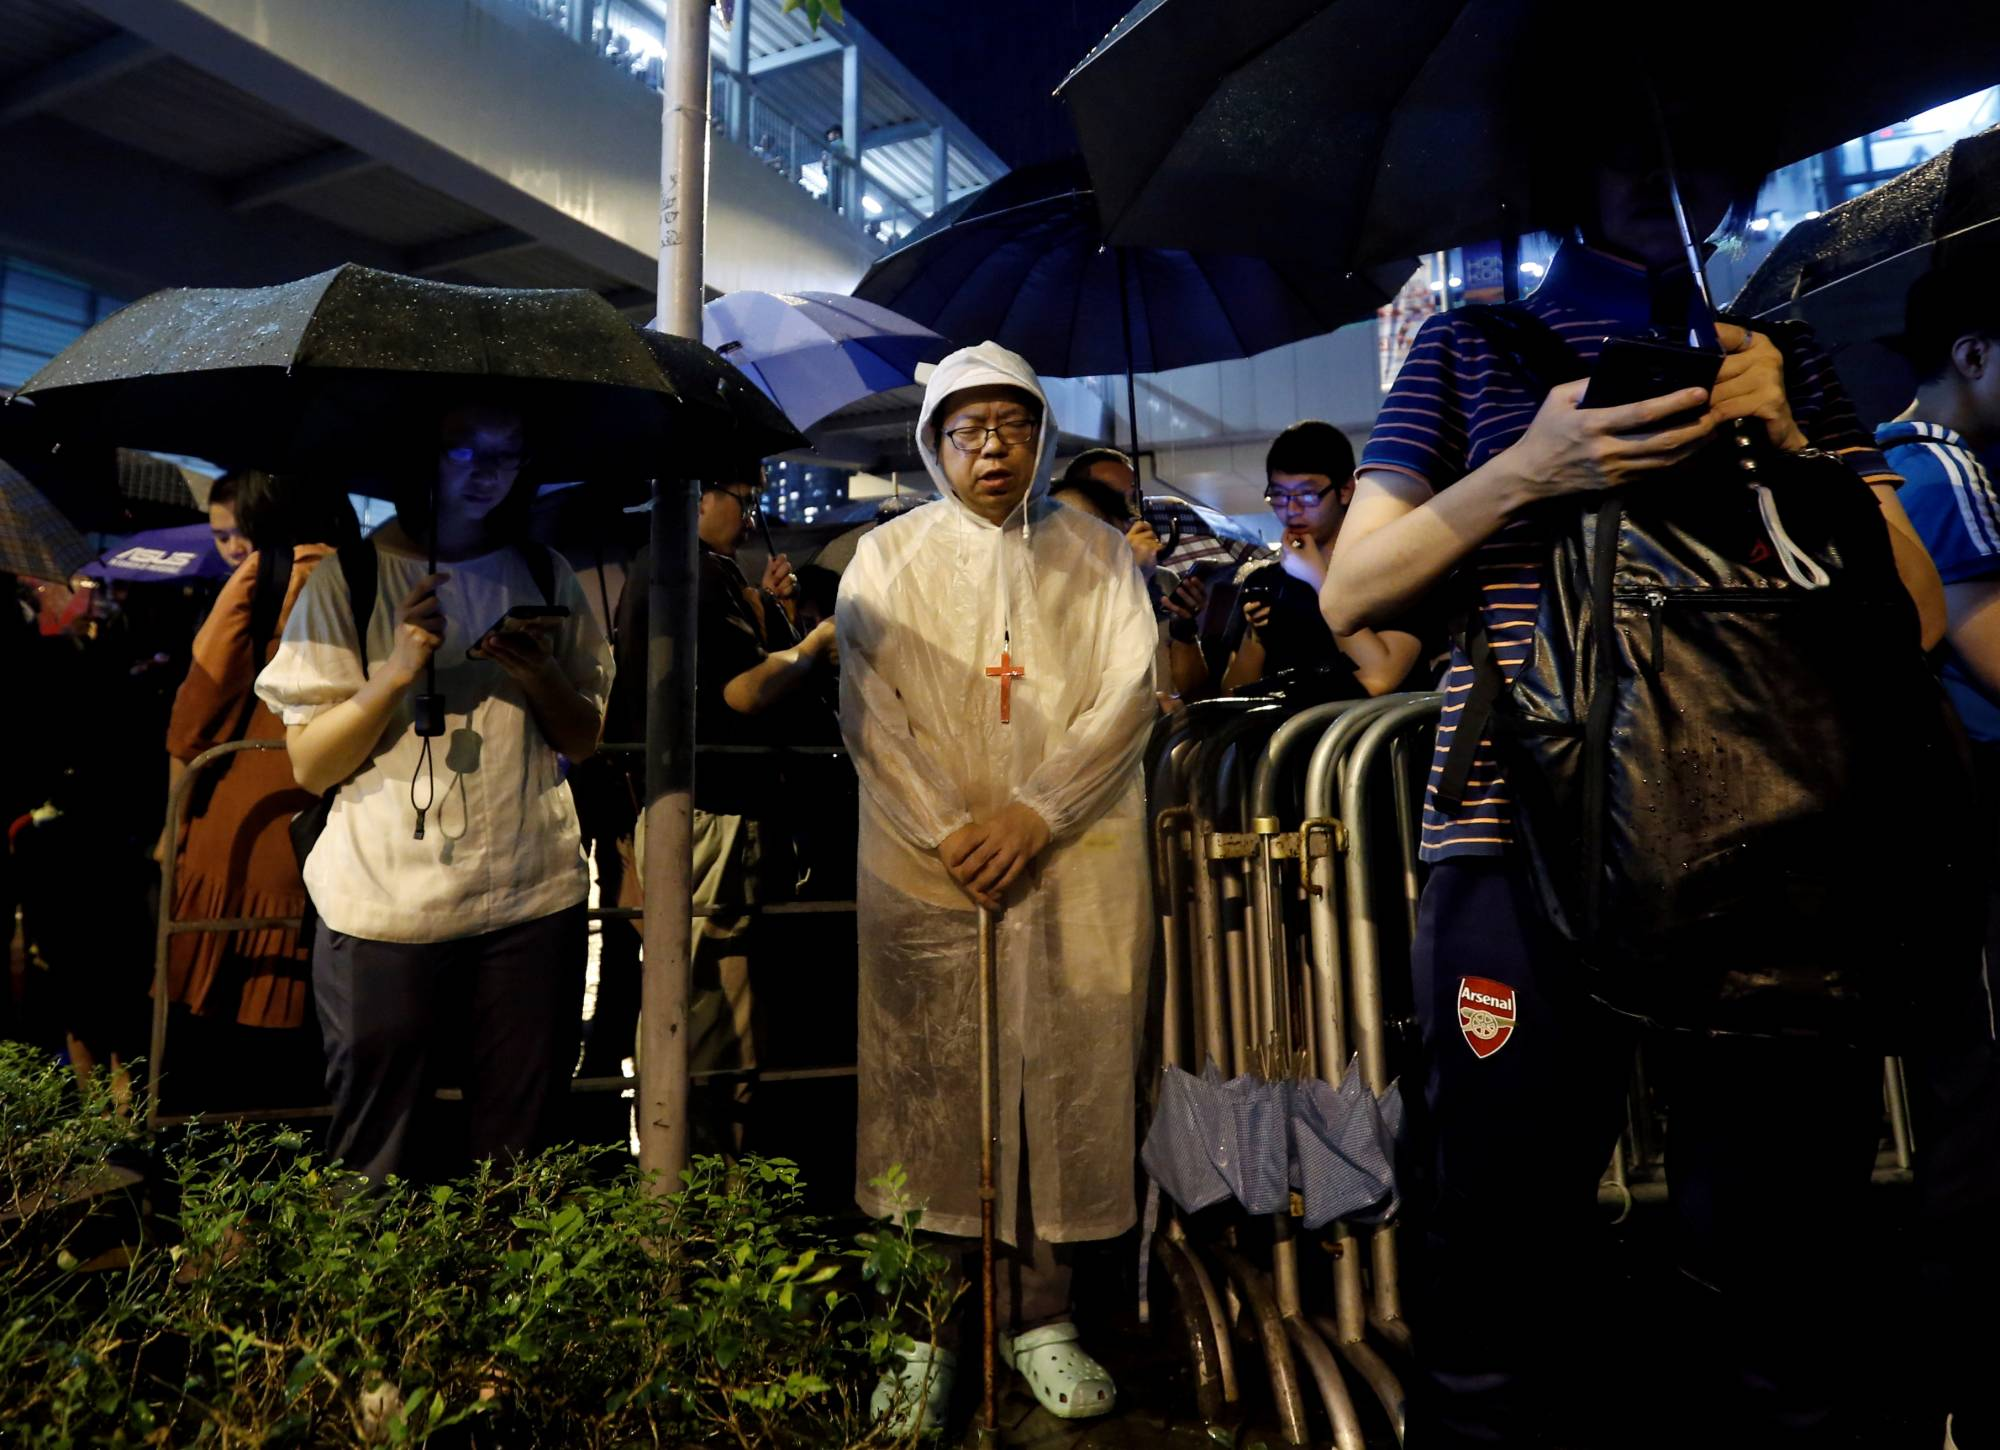 Worshipers attend a Catholic service outside the Legislative Council building as they protest a controversial extradition bill in Hong Kong in June 2019. | REUTERS